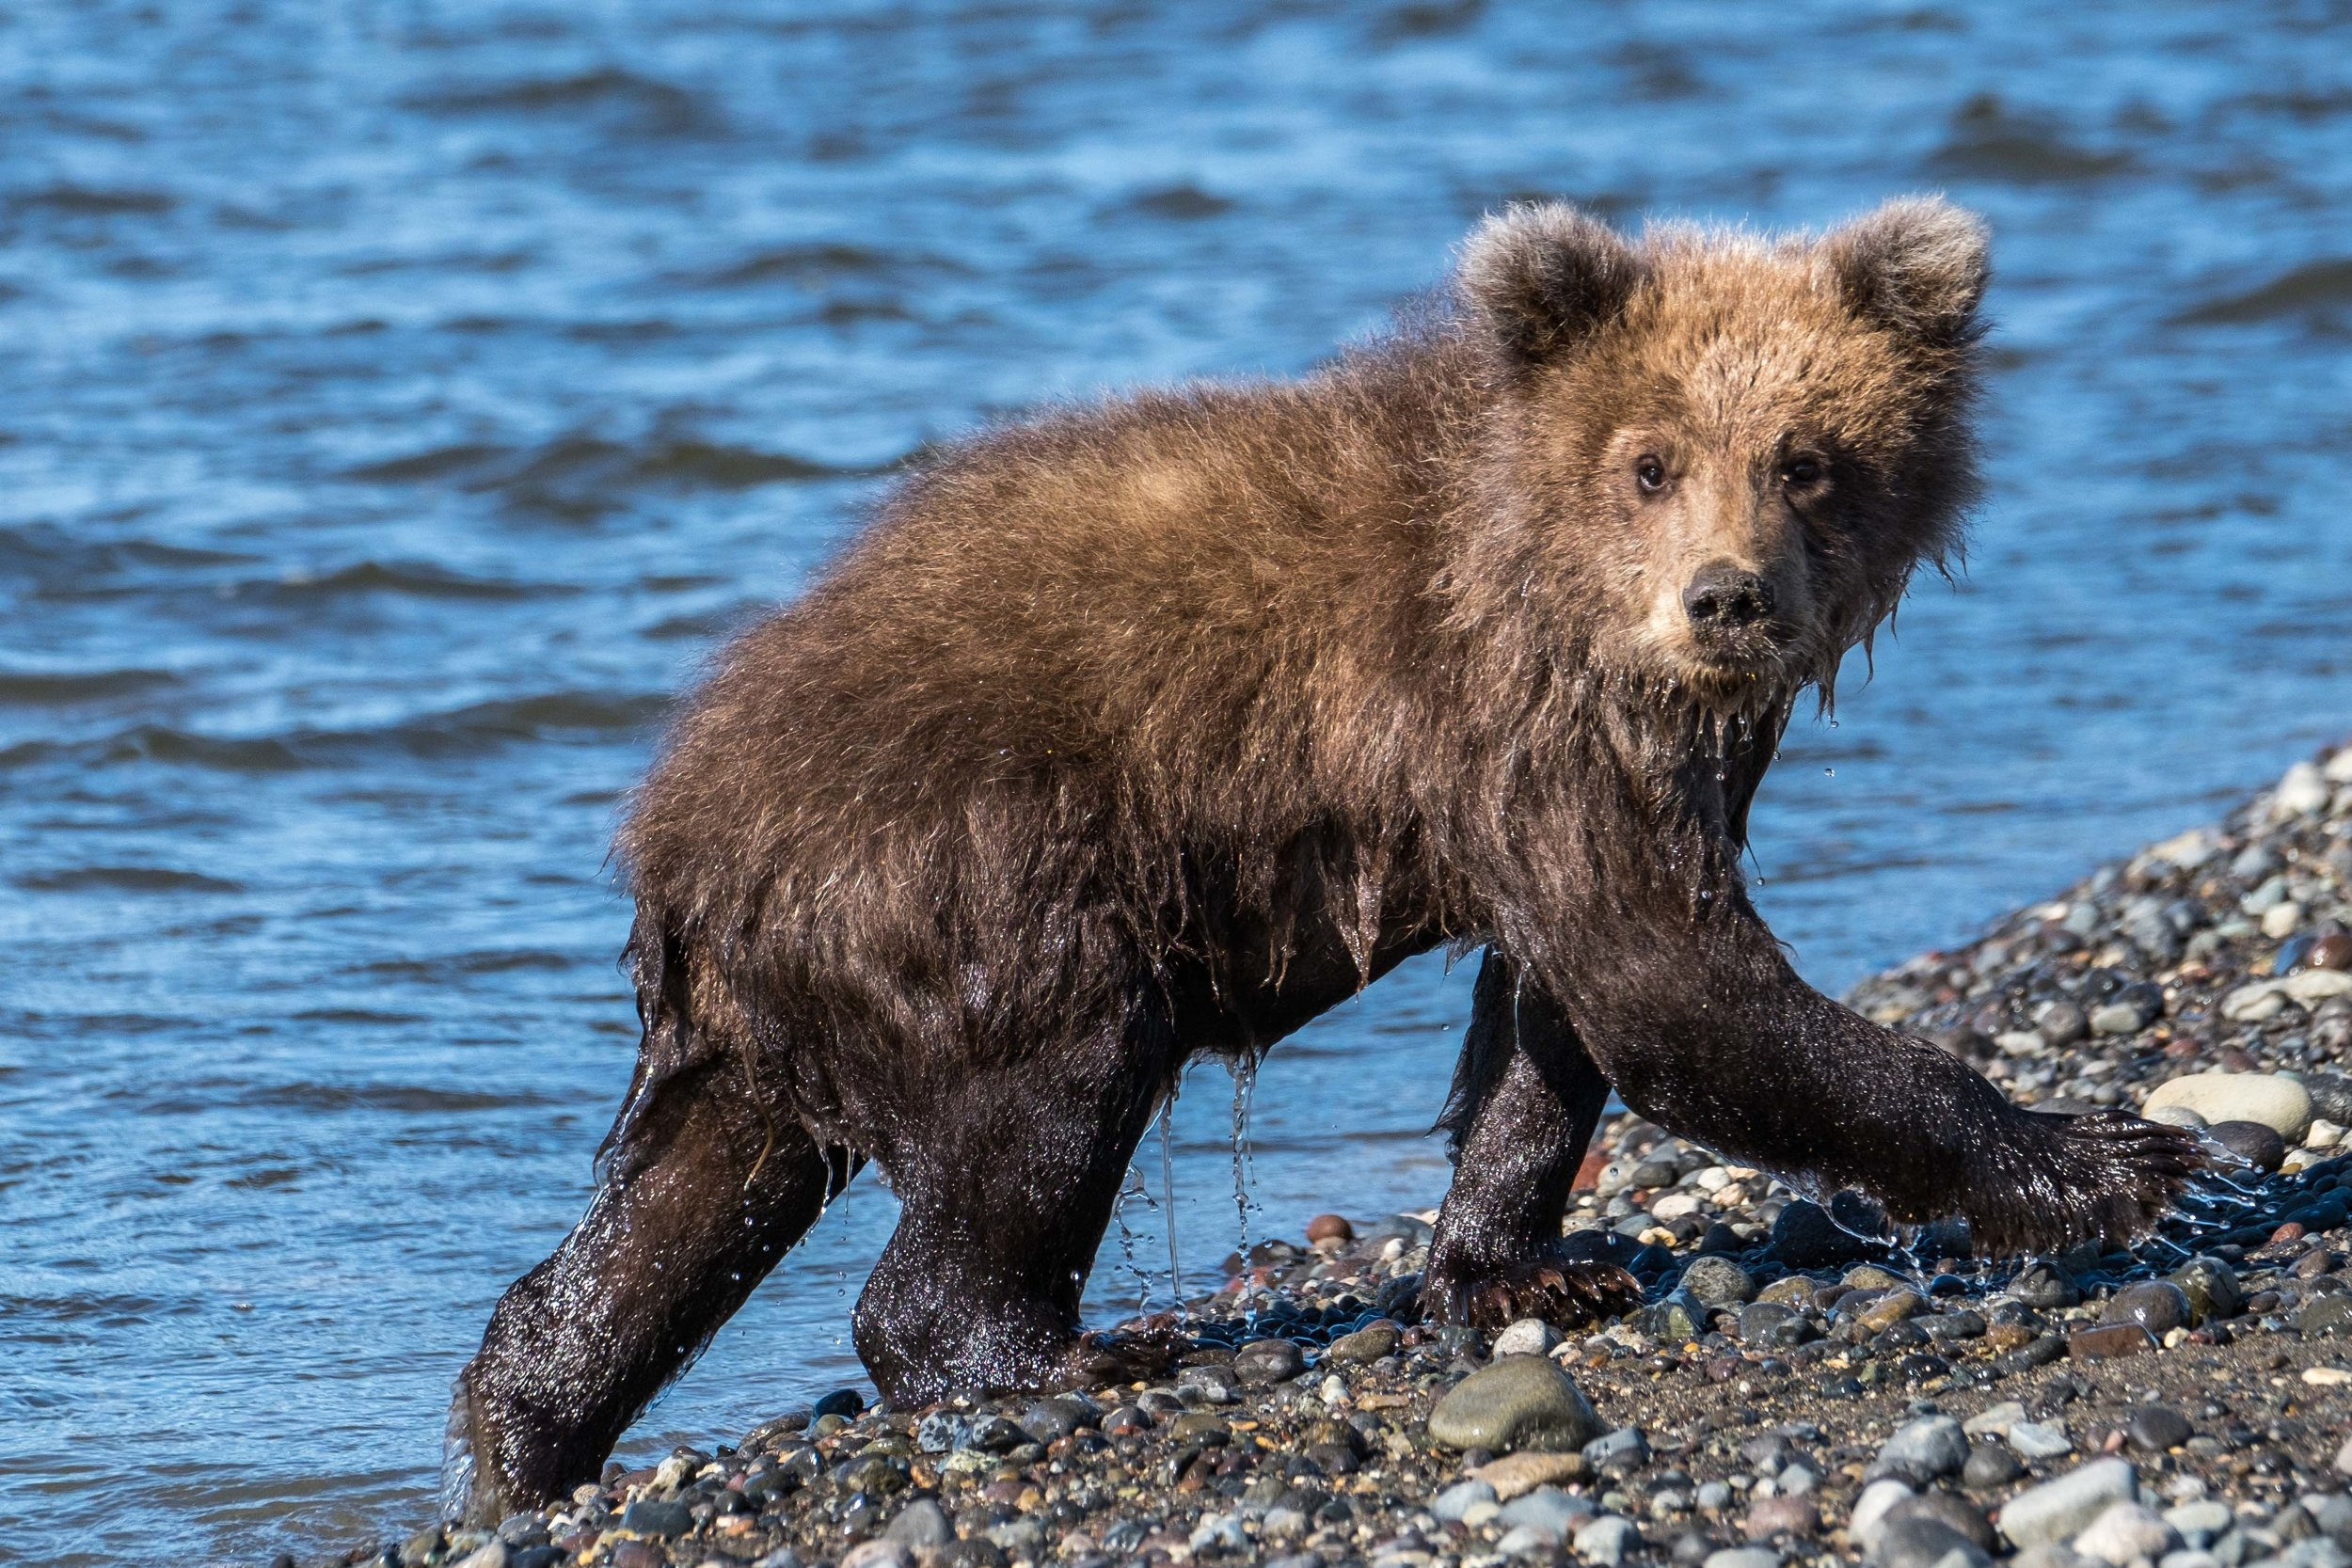 One of the cute little cubs crossing the river.